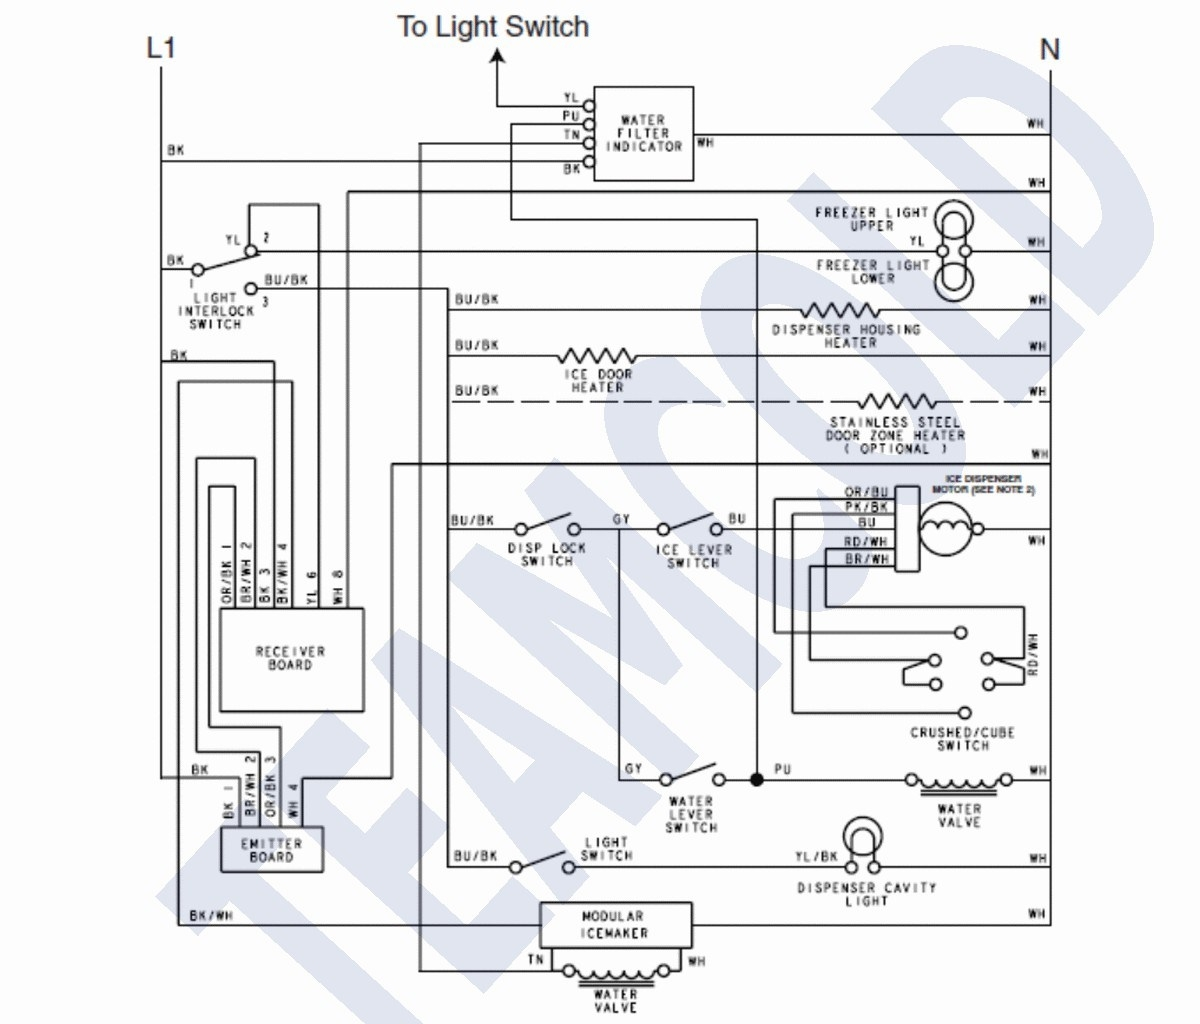 Remarkable Whirlpool Ice Maker Wiring Schematic Wiring Diagram Wiring Cloud Nuvitbieswglorg